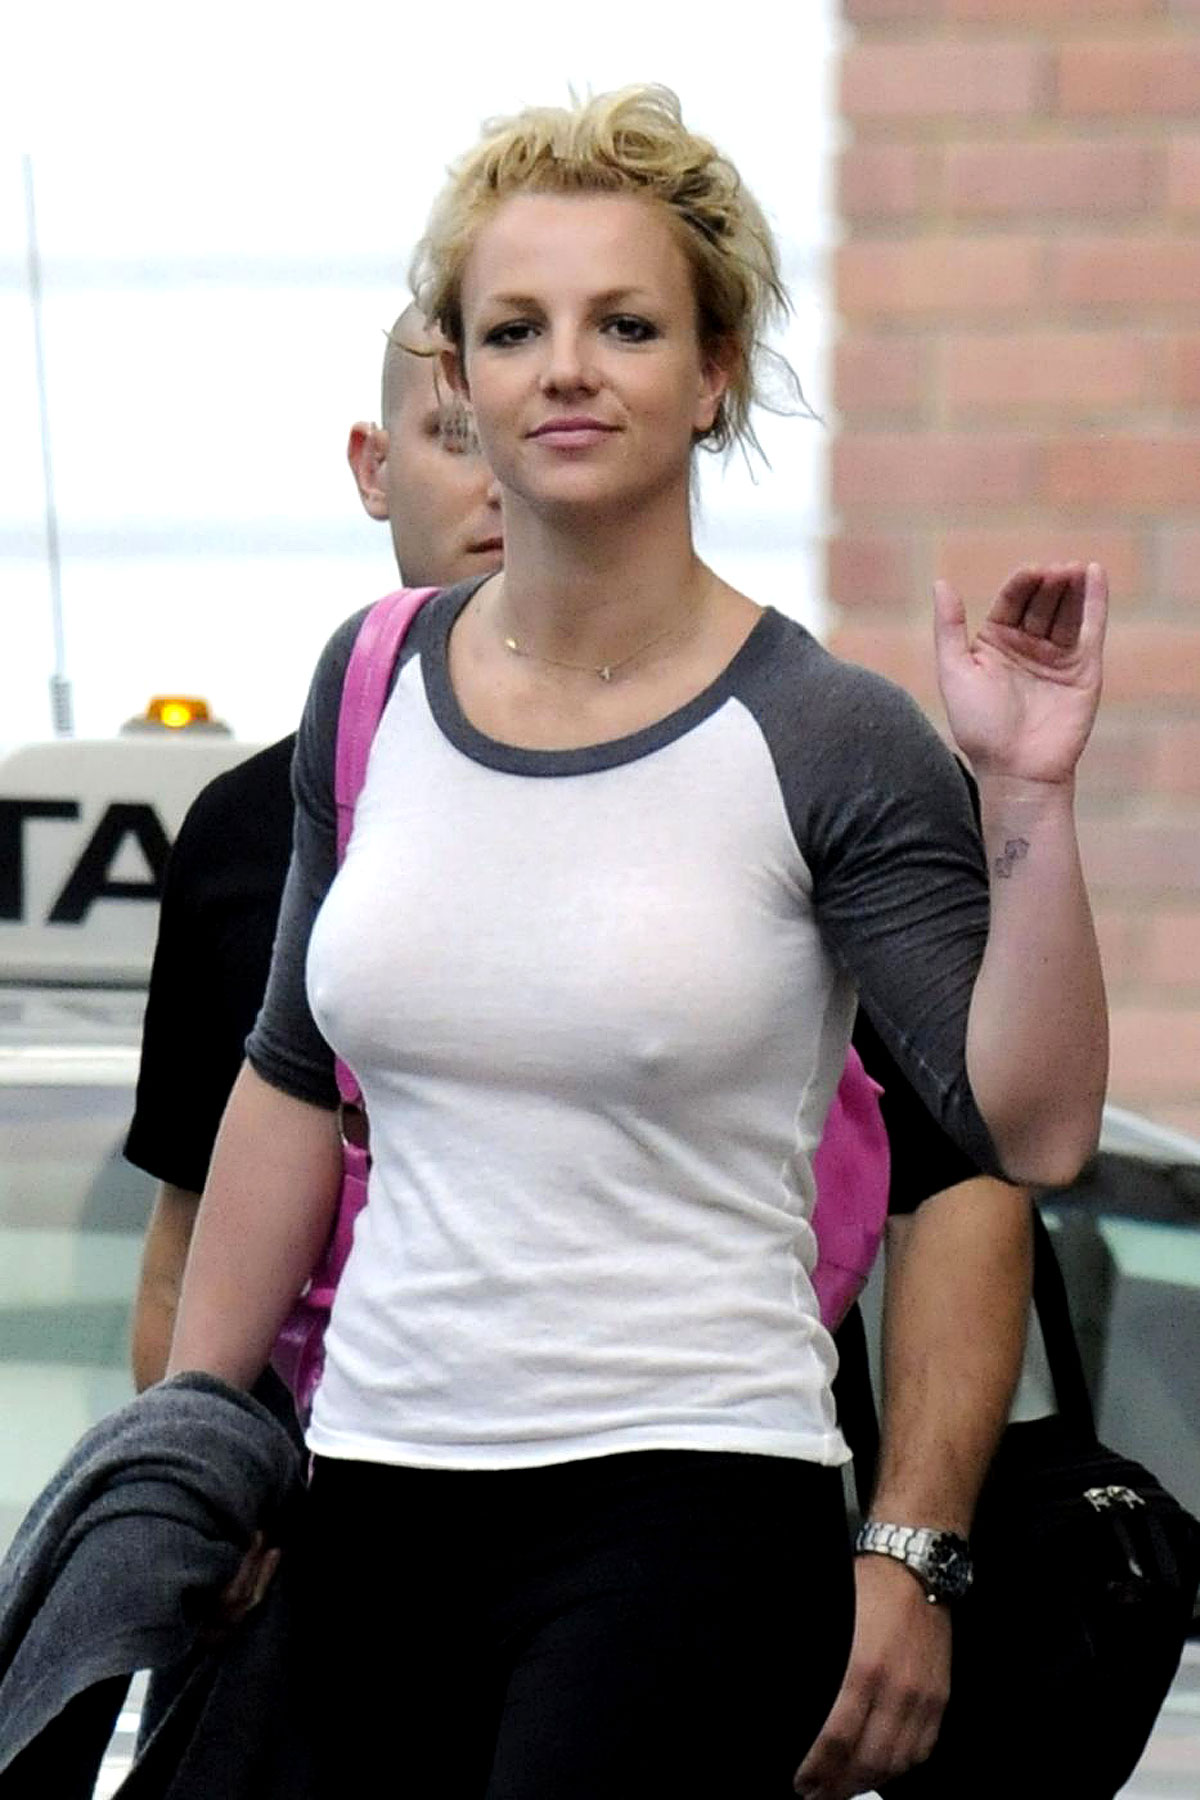 PHOTO GALLERY: Britney Goes Braless